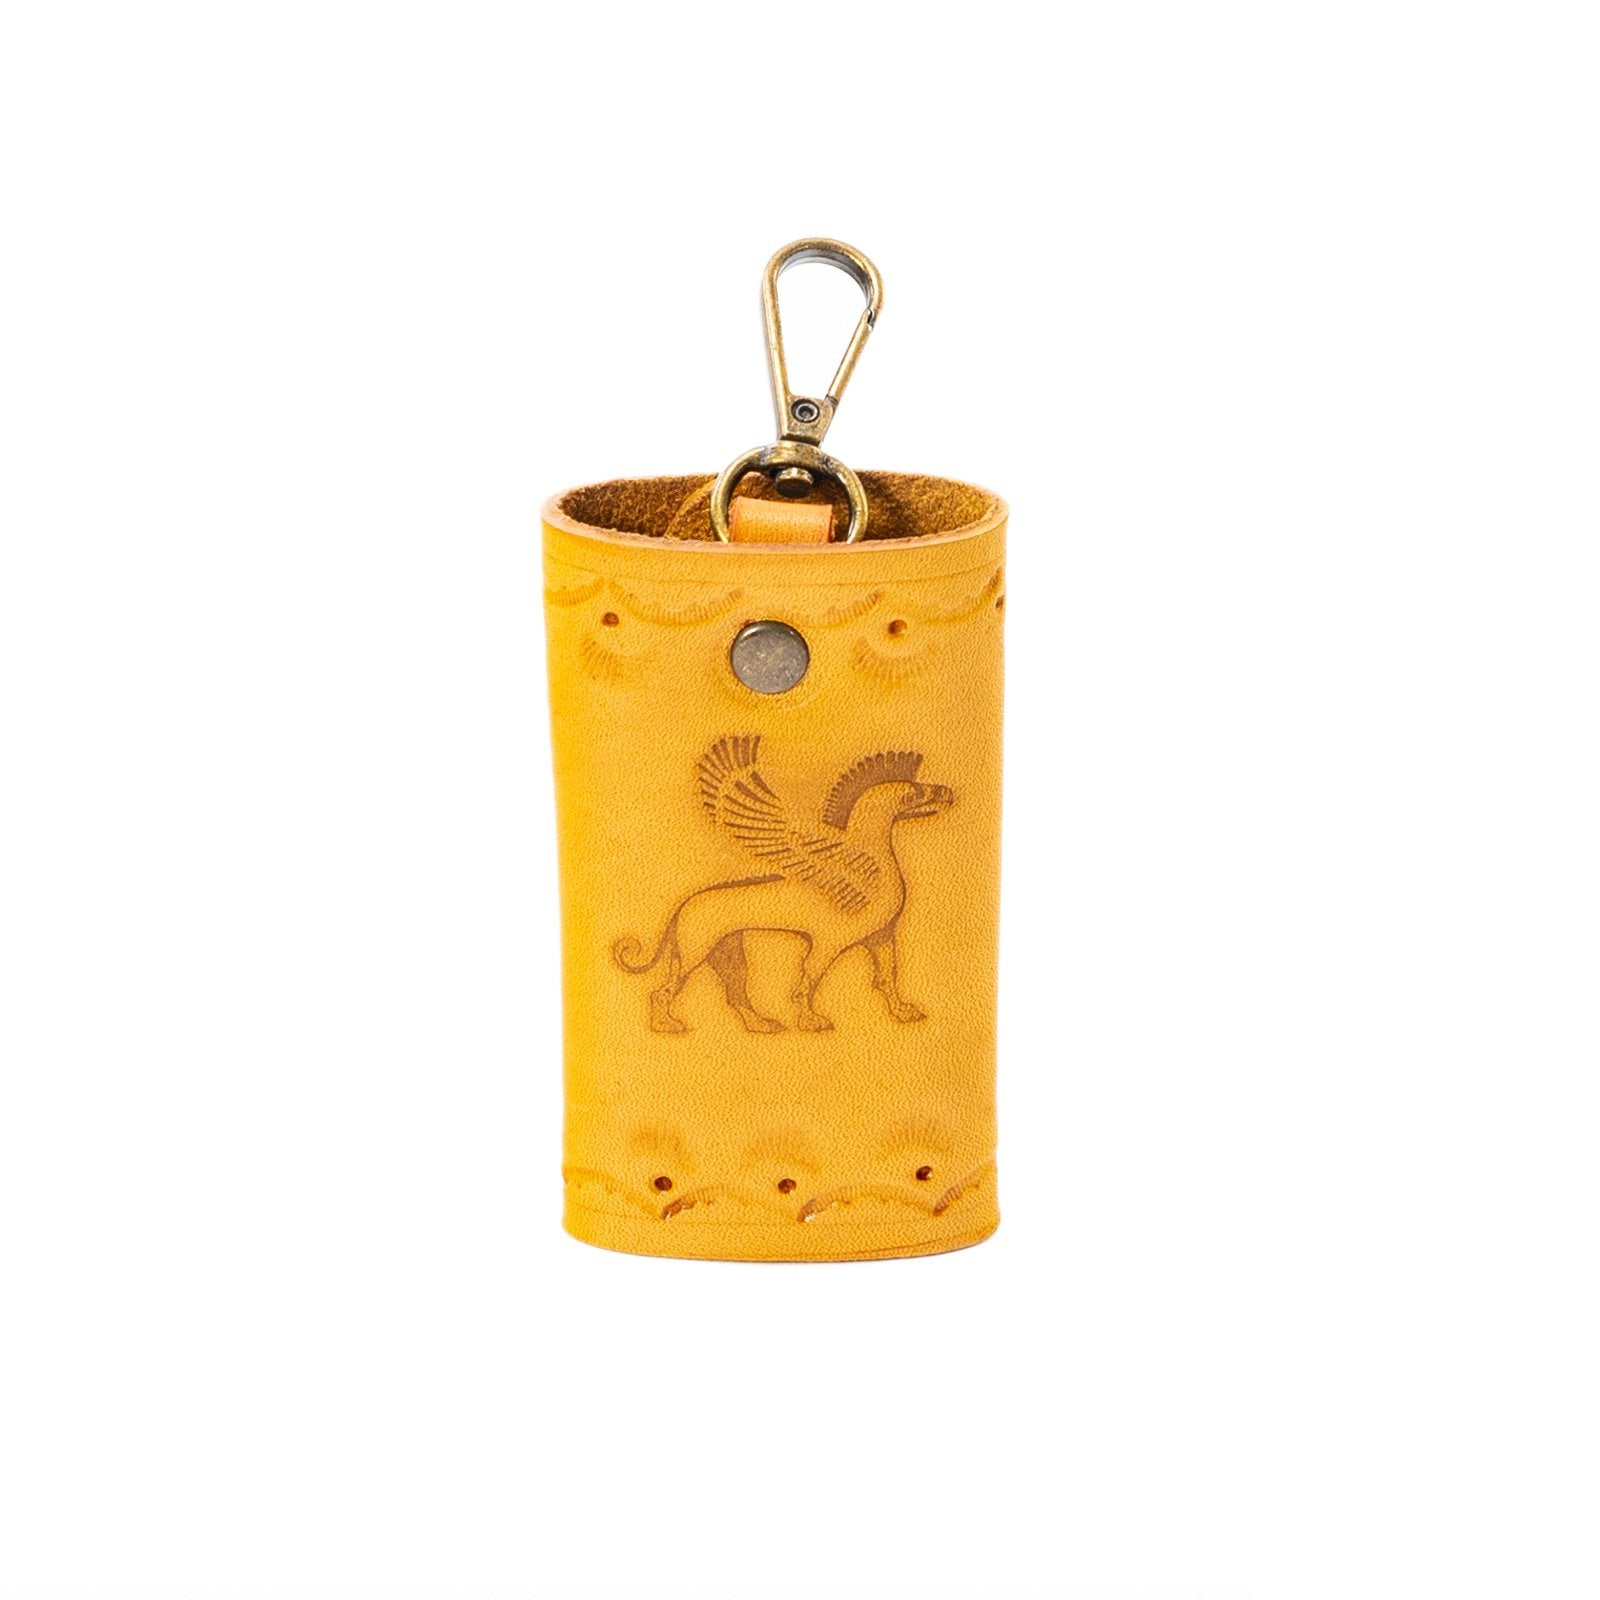 Derifix Ortella Yellow Handmade Leather Keyholder